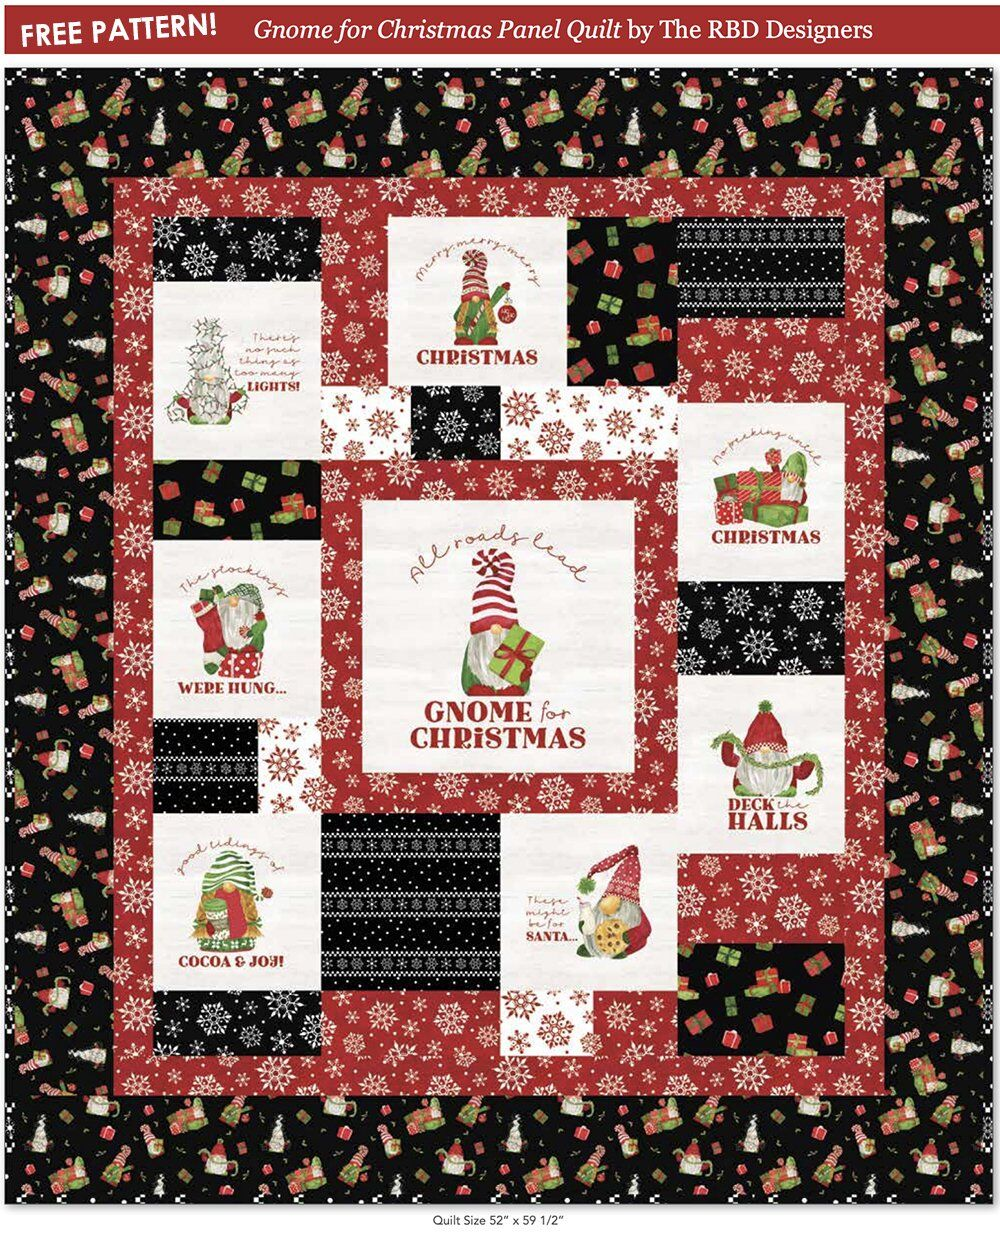 Free Christmas Quilt Pattern: Gnome for Christmas by Tara Reed